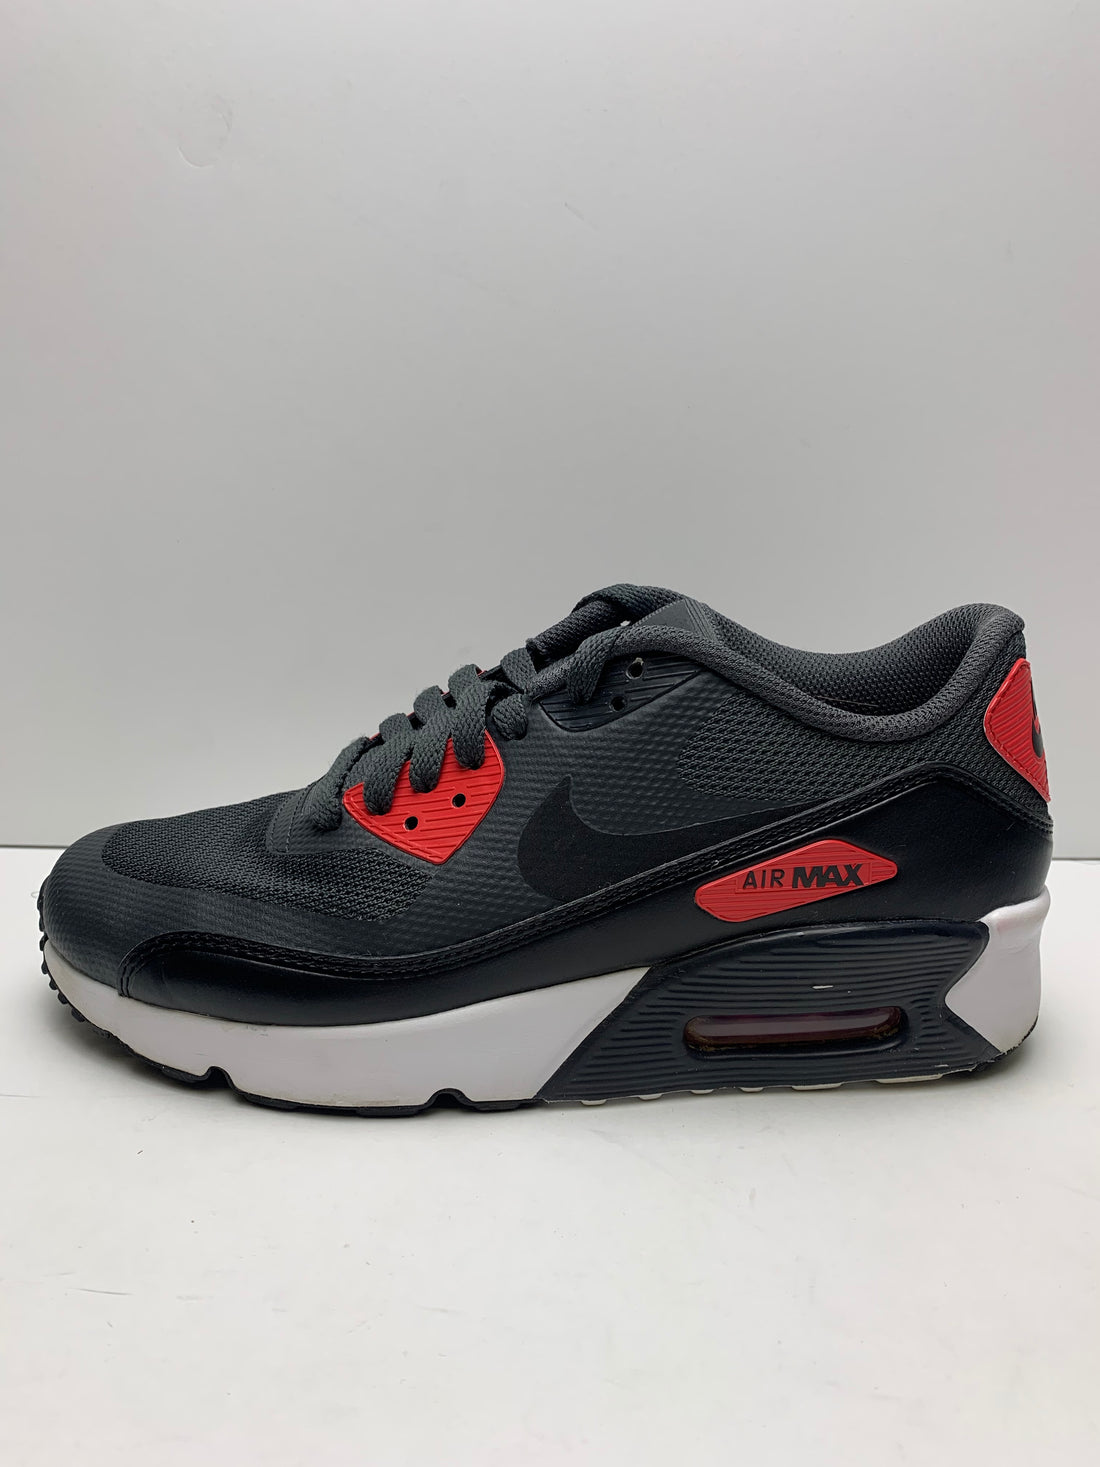 Air Max 90 Ultra 2.0 Anthracite Black (GS)